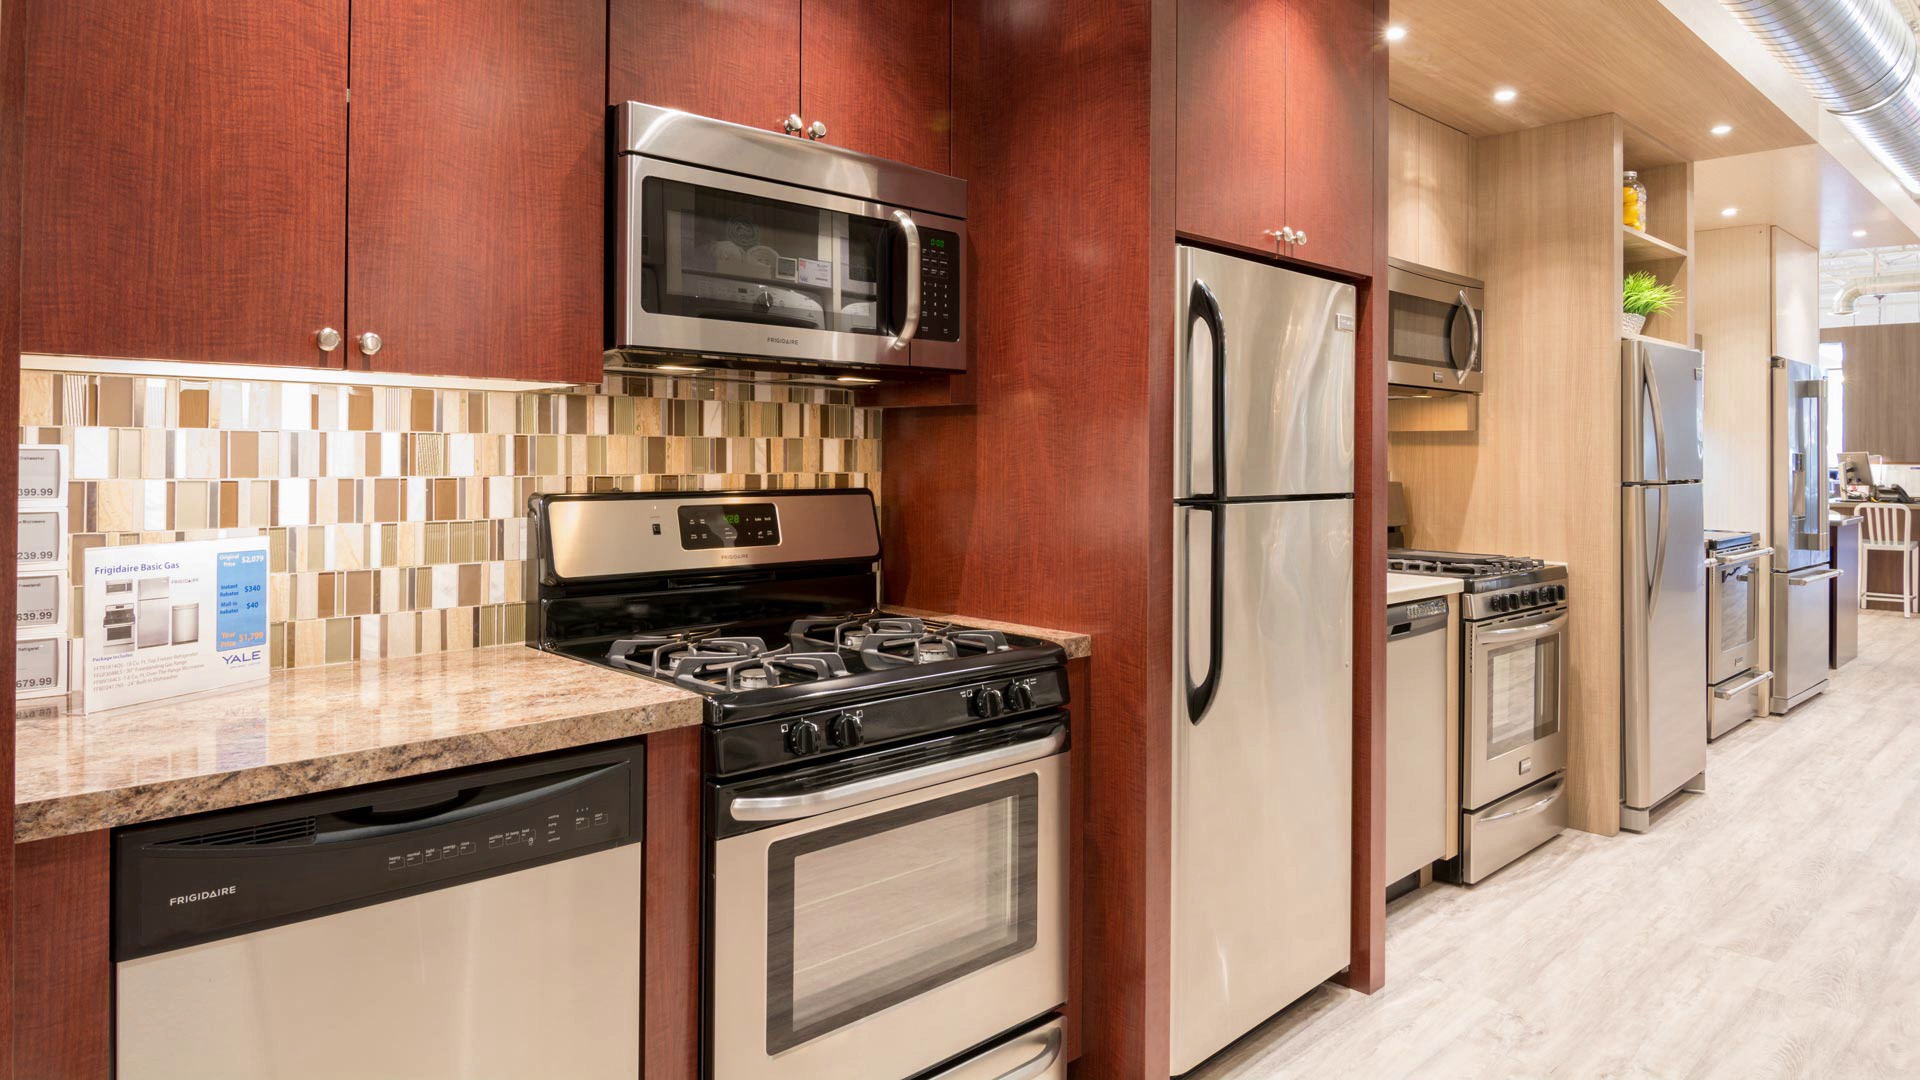 Appliances Packages Sale Should You Buy A Kitchen Appliance Package